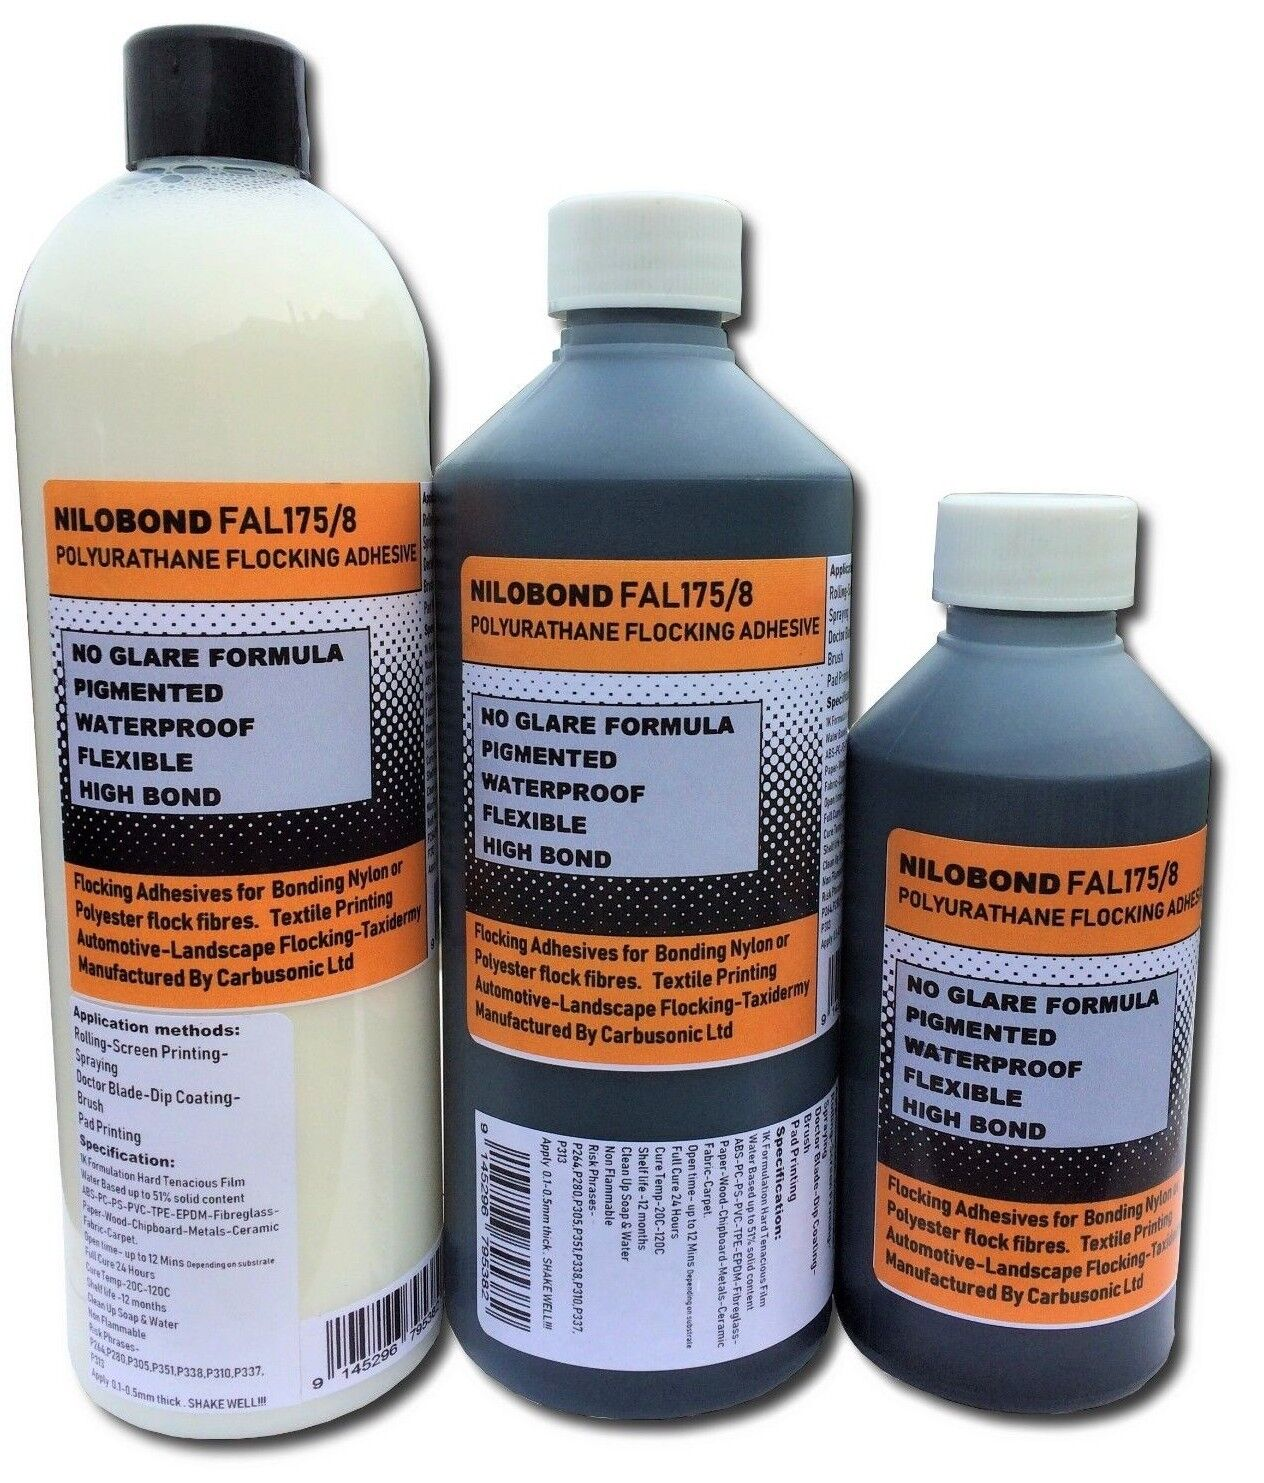 Flocking Adhesive For Nylon Polyester Dashboard Flexible Waterproof  Black Kit